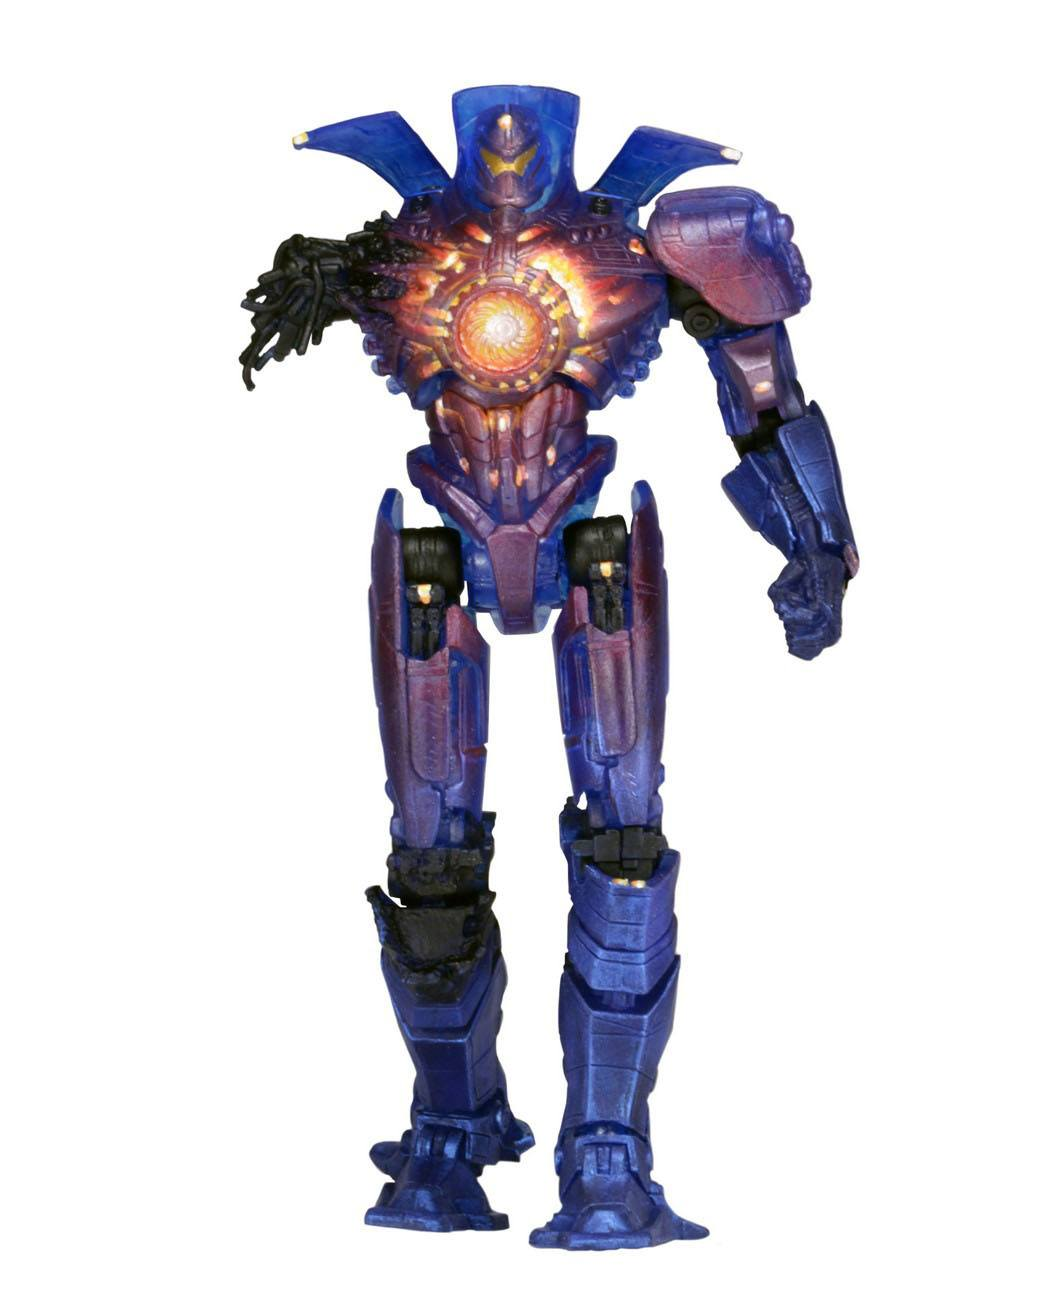 Pacific Rim Ultra Deluxe Action Figure Anteverse Gipsy Danger 18 cm